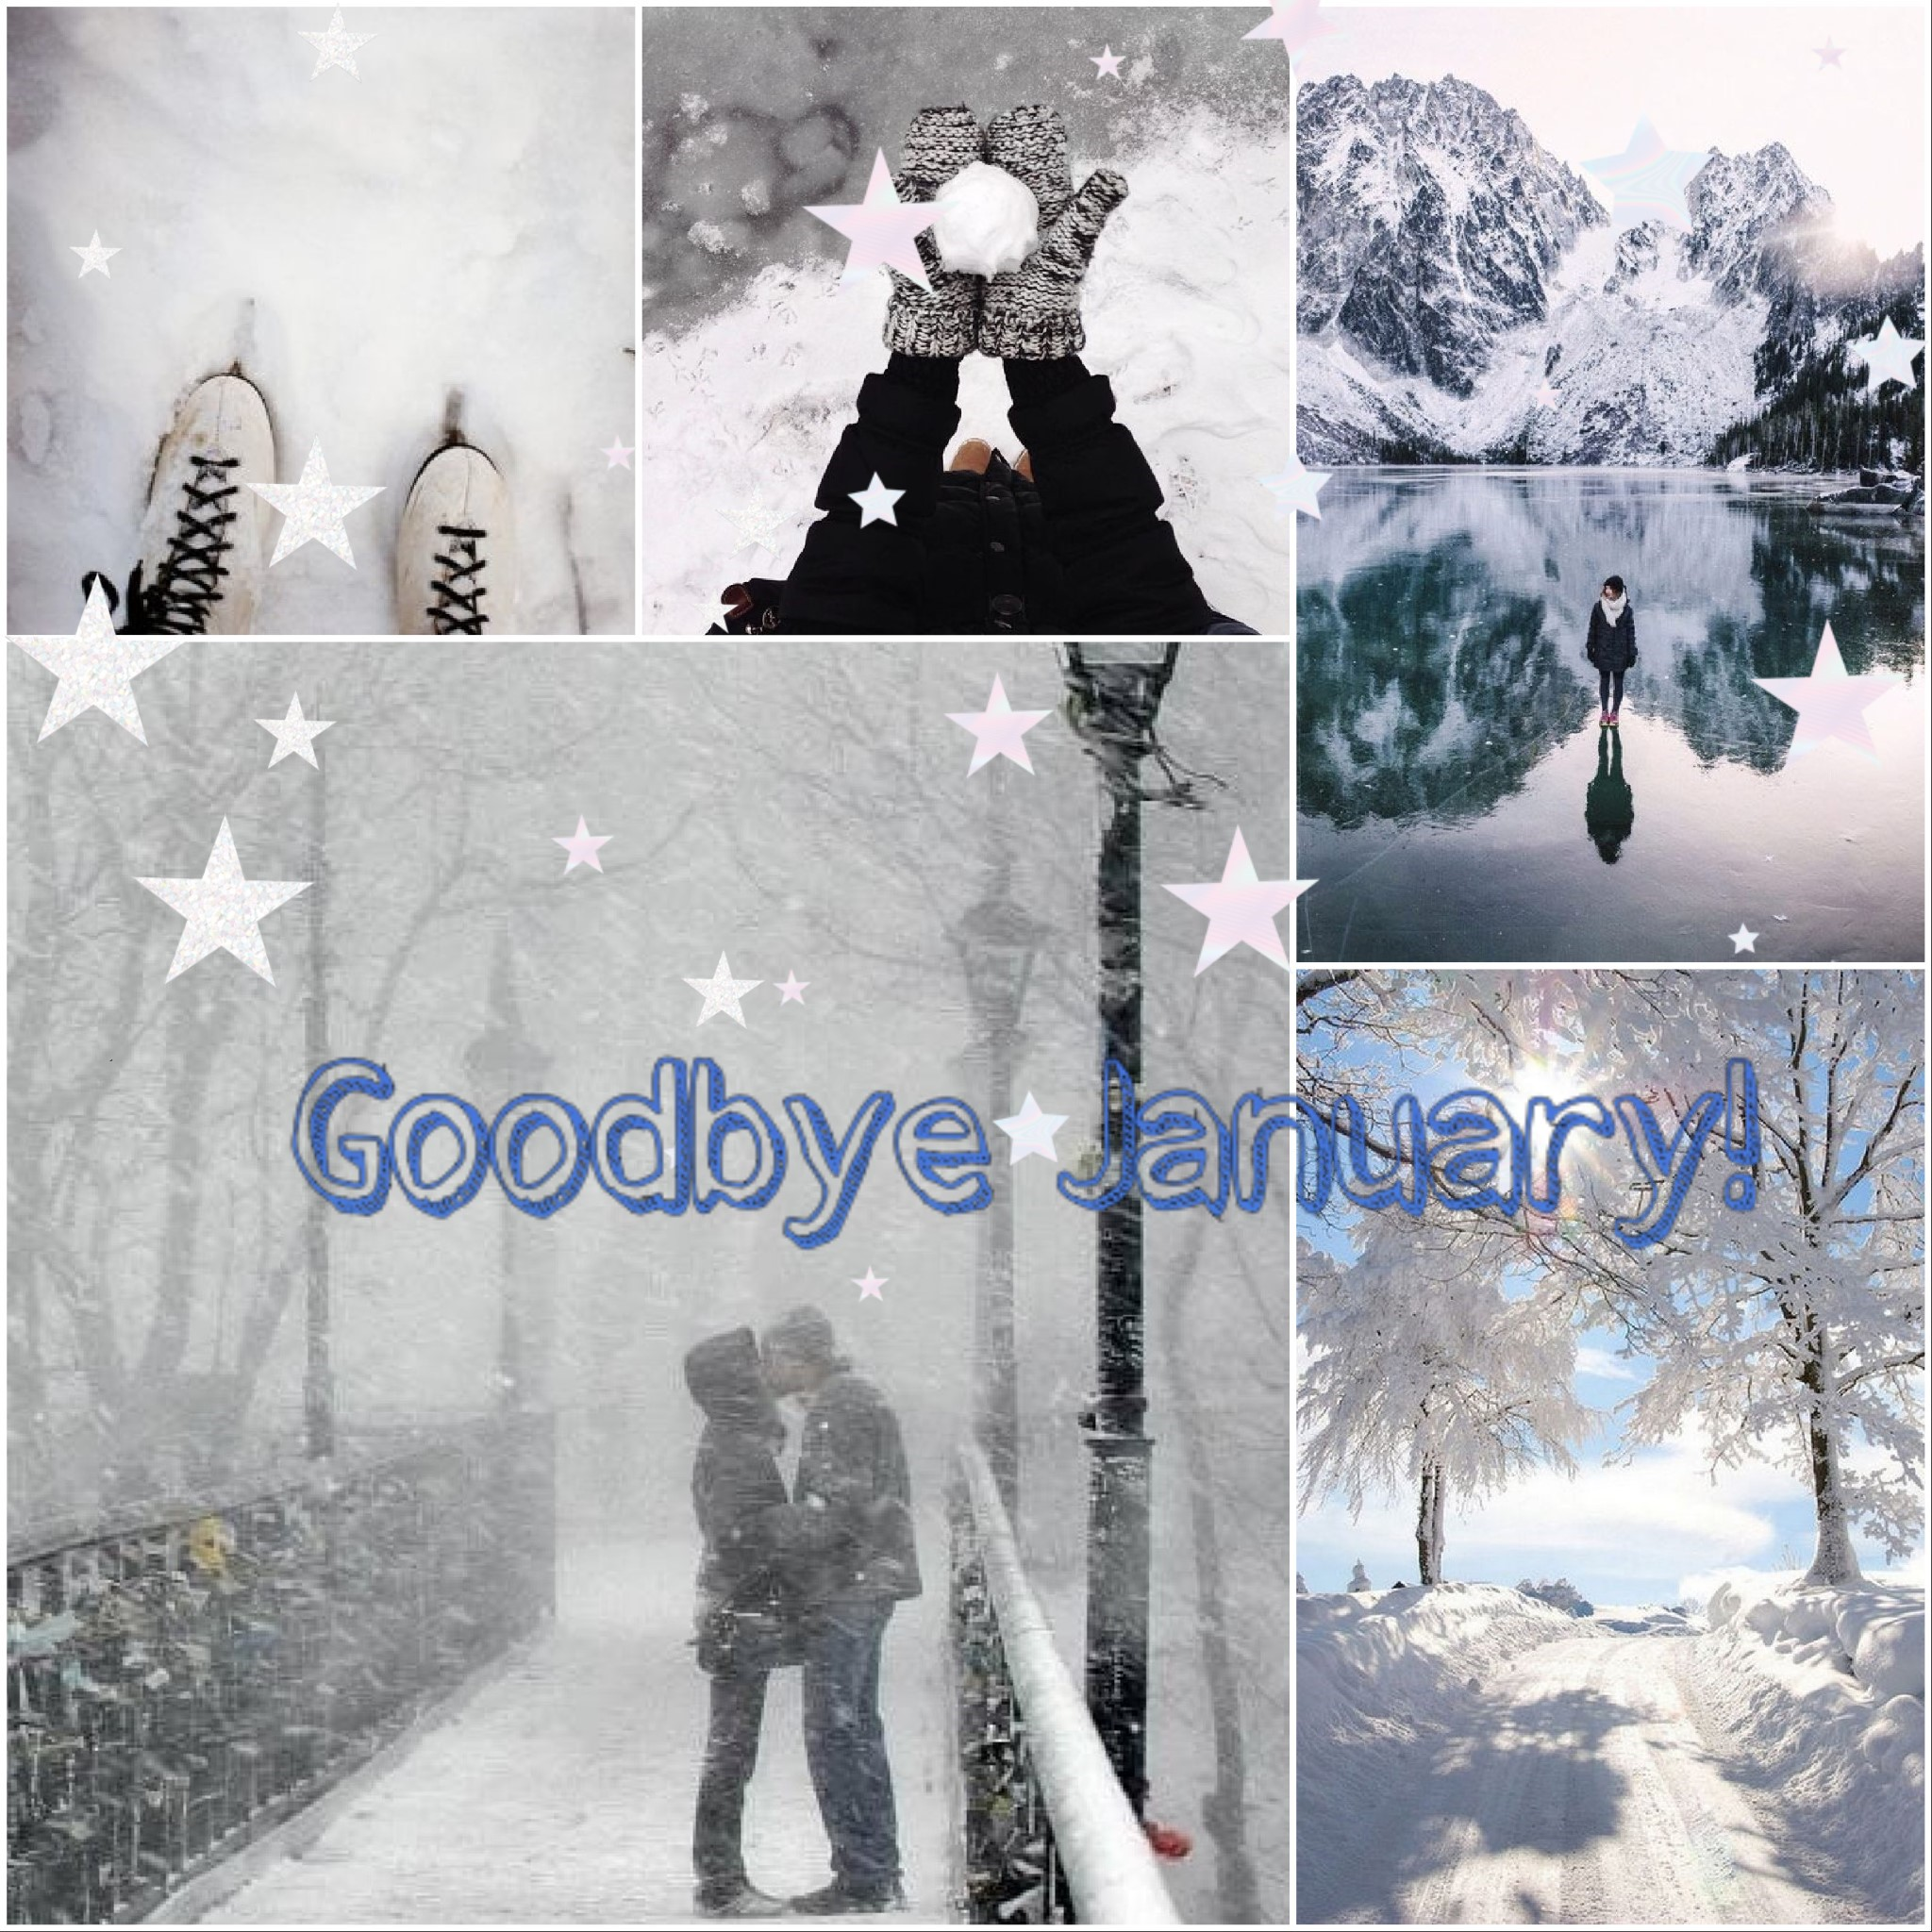 Goodbye January!